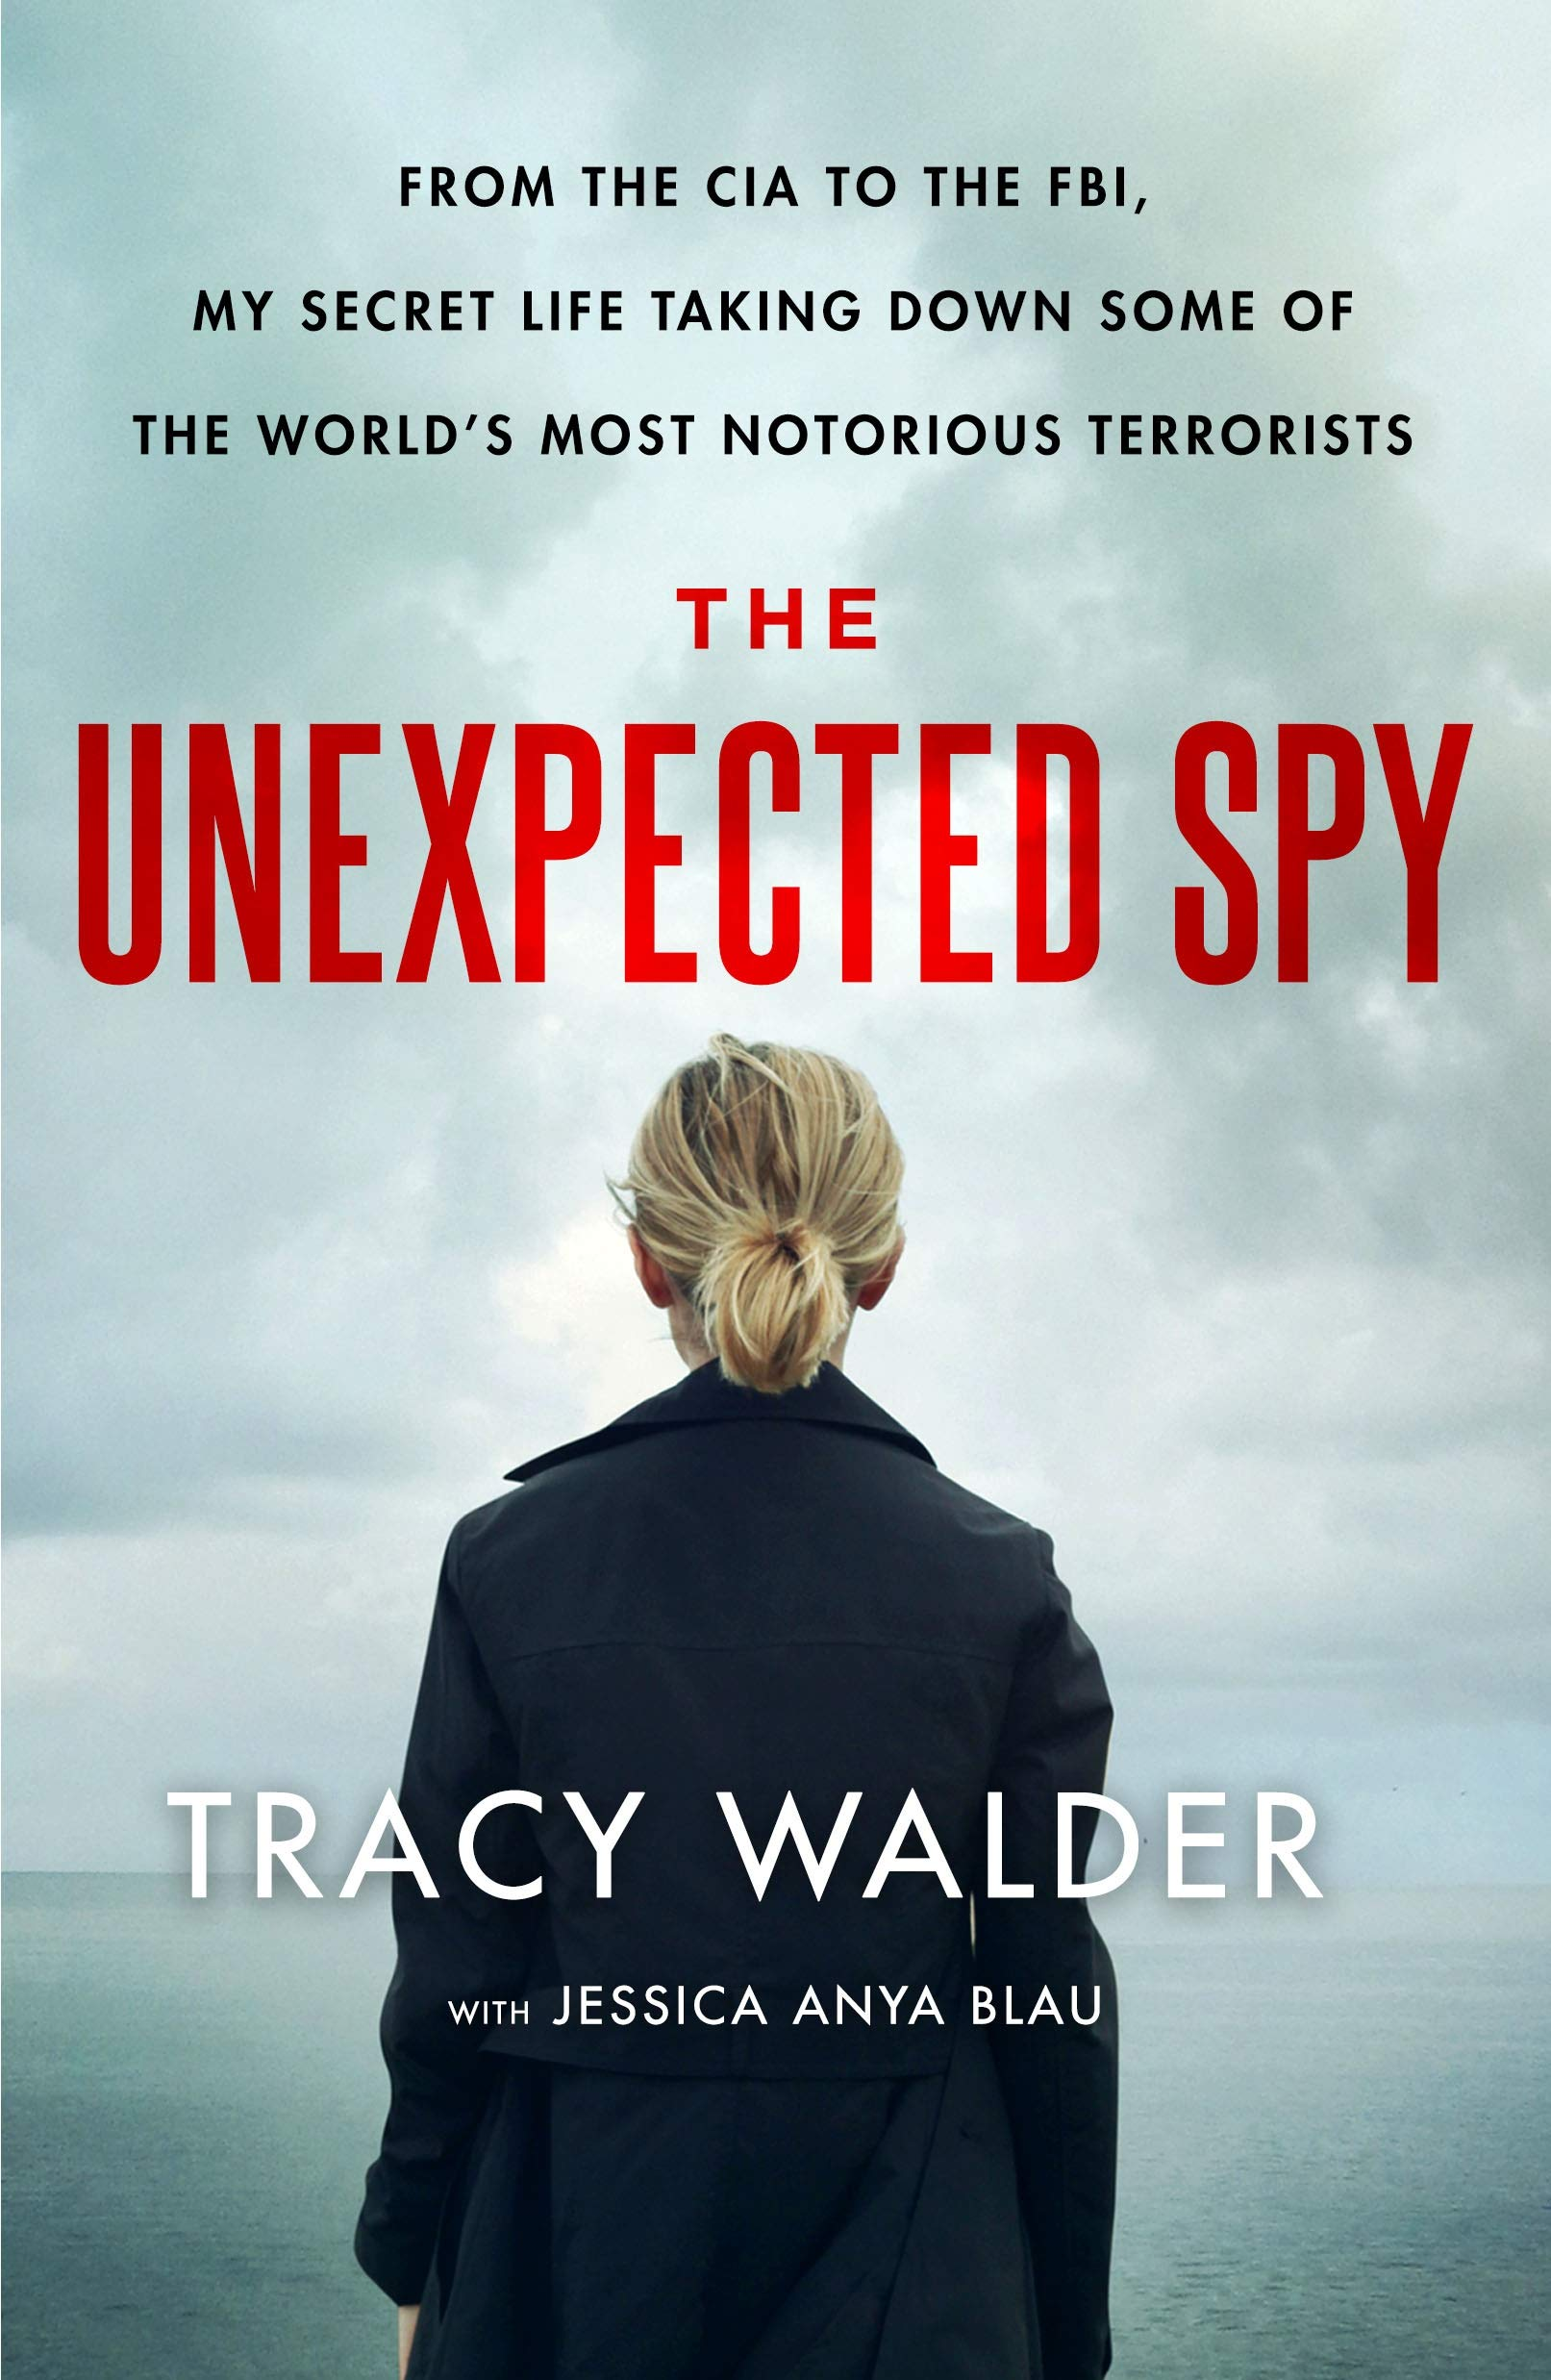 Tracy Walder's The Unexpected Spy